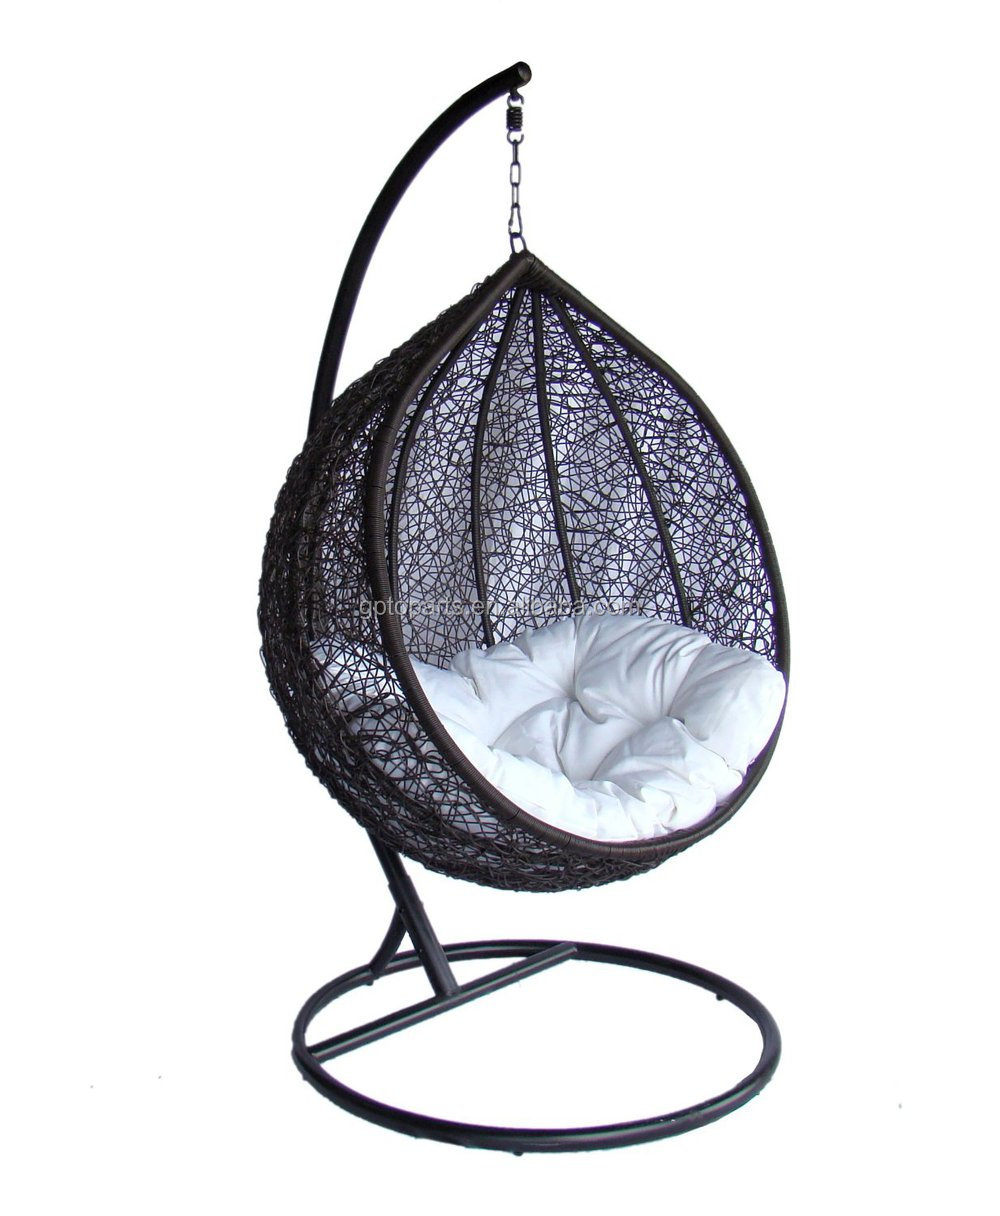 Lexmod Cocoon Wicker Rattan Outdoor Wicker Patio Swing